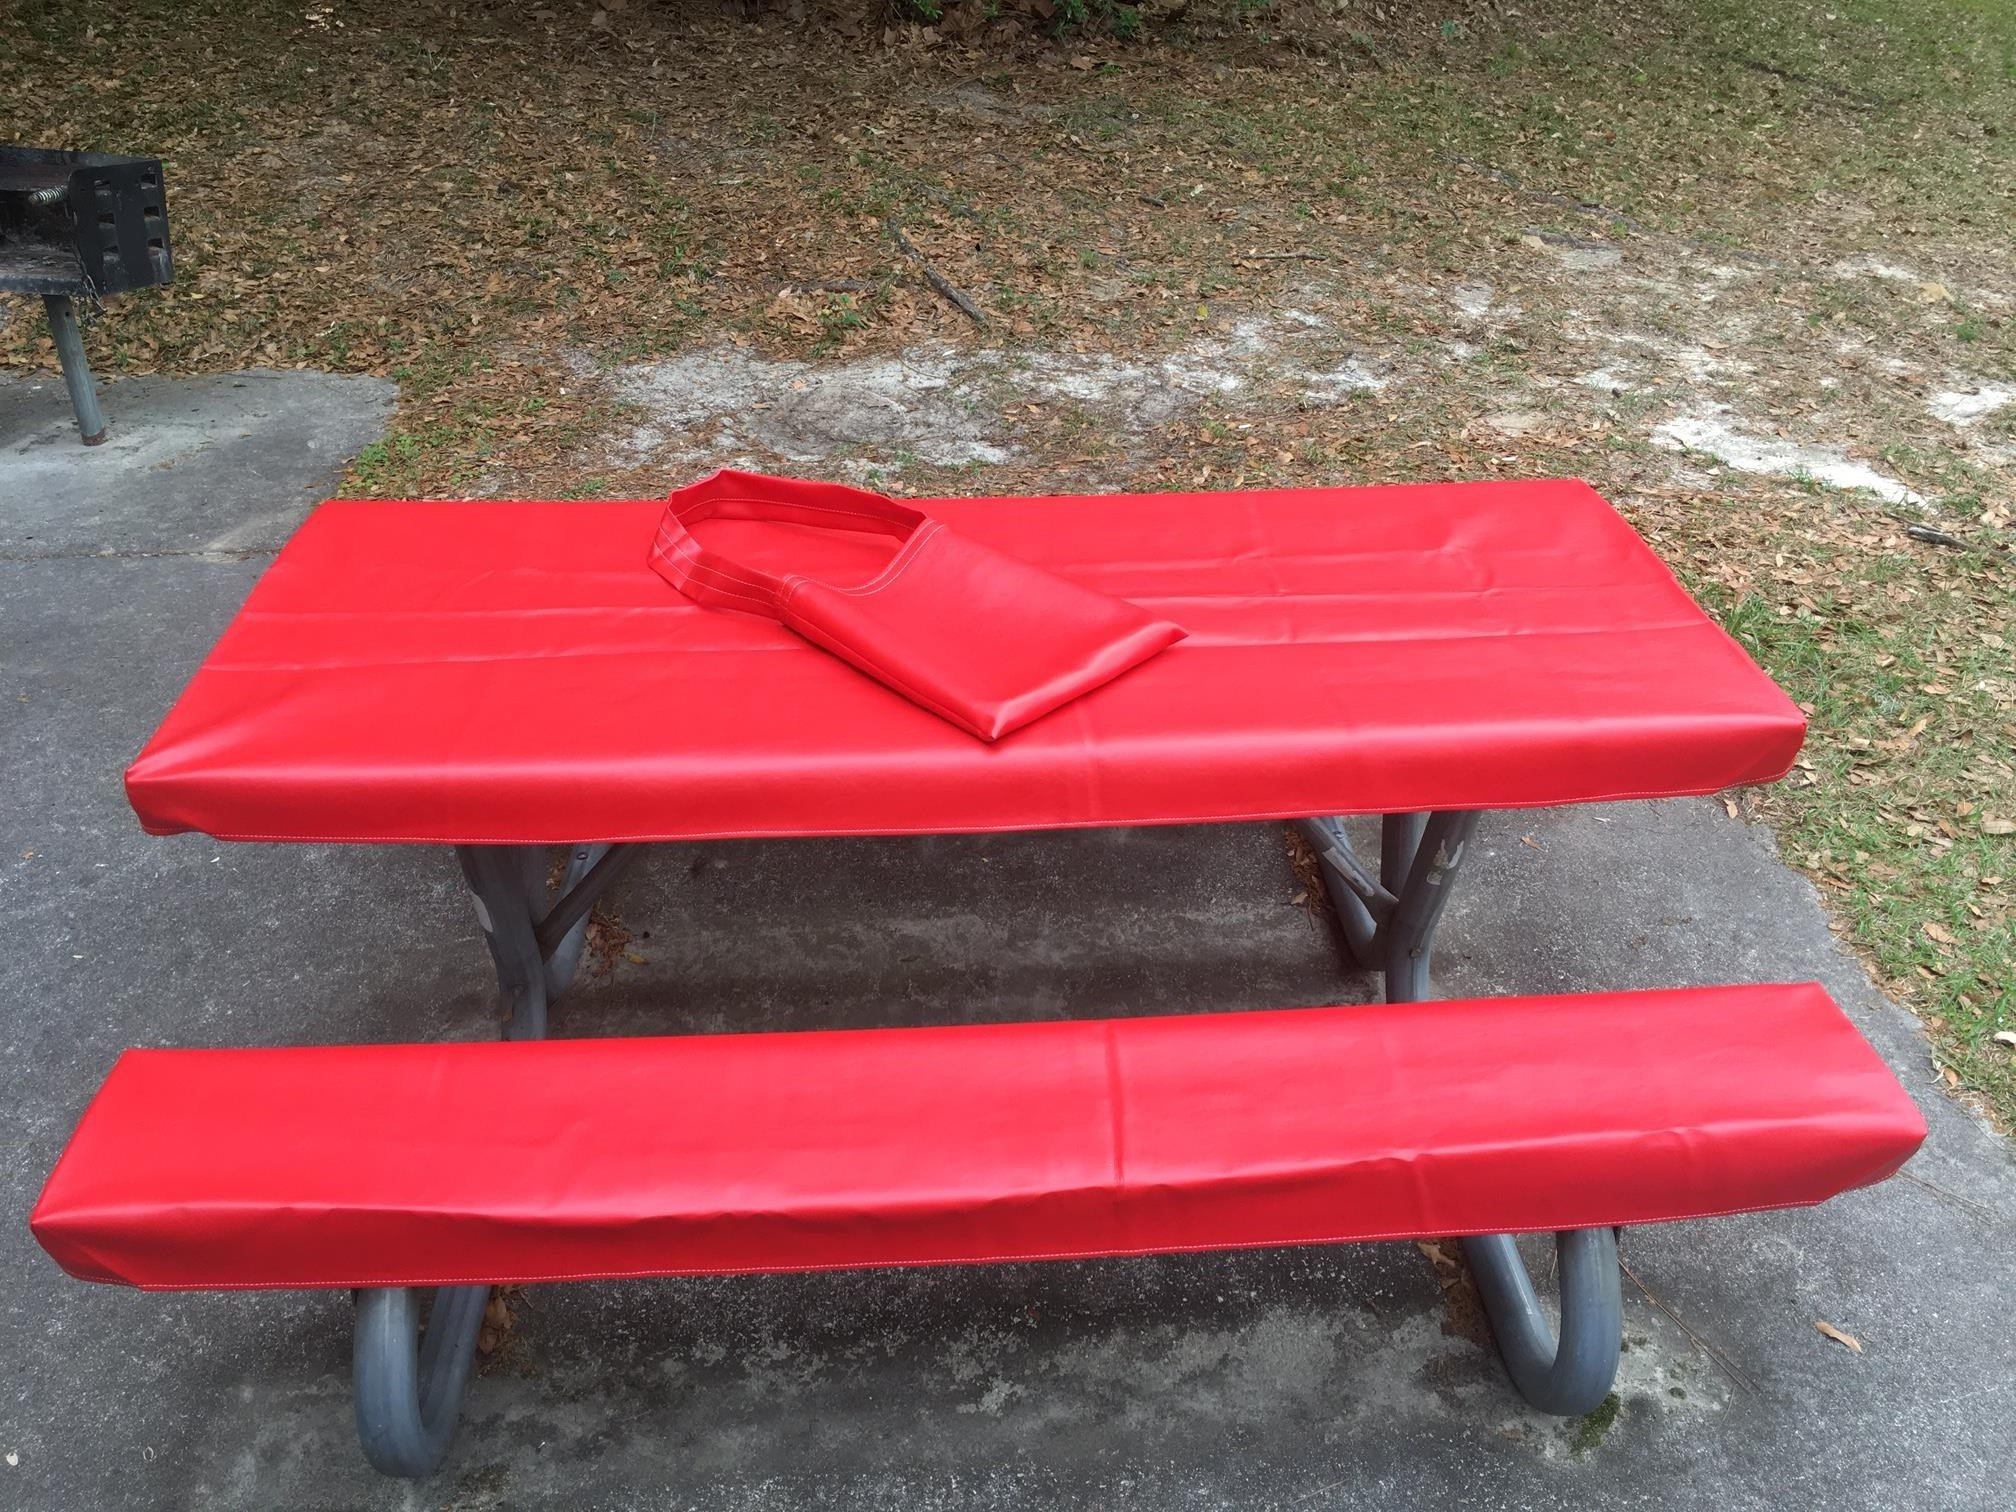 Table Gloves- Worlds Finest, Most Heavy Duty, Fitted Marine Grade Vinyl Picnic Table Cover Sets- Hand Made in The U.S.A. - Great for Camping or Full Time RV Living-(8 Foot Set- Classic Red) by Table Gloves (Image #2)